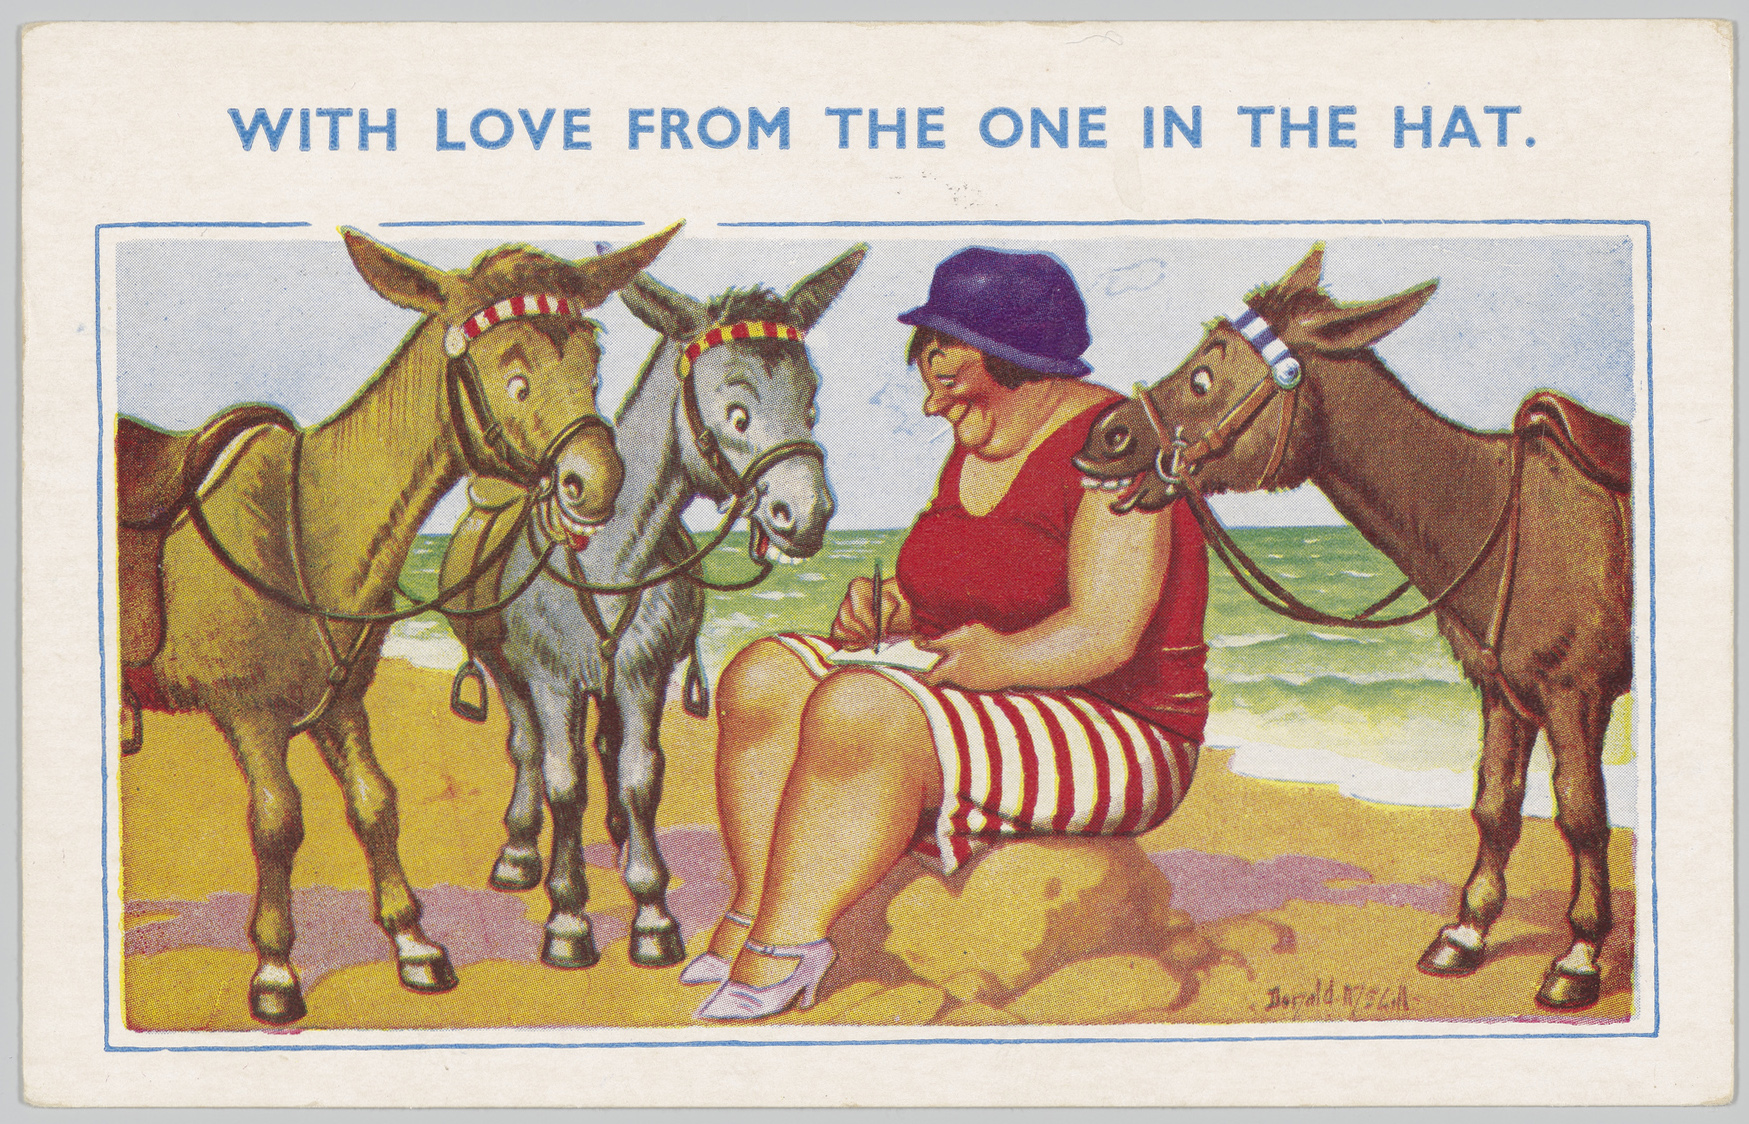 'With love from the one in the hat' Postcard, 1957 © Donald McGill, on loan from the Brown Family, E16361/06